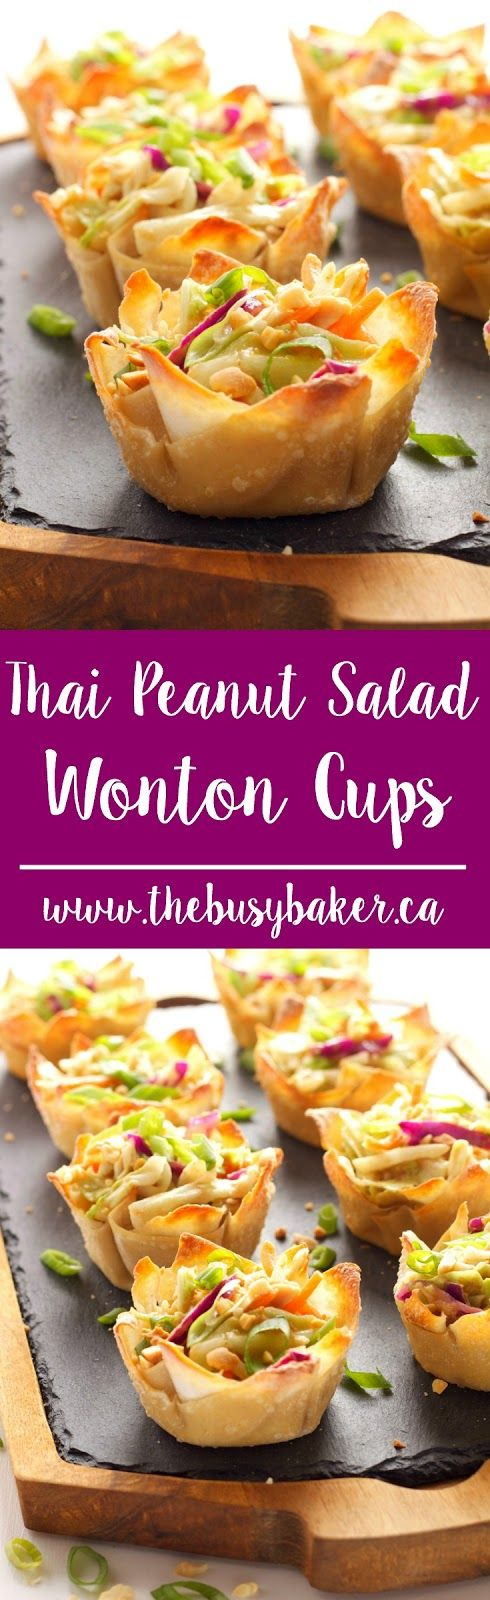 14729 best most pinned holiday recipes images on pinterest thai peanut salad cups vegetarian wontonthai vegetarian recipesvegetarian forumfinder Image collections